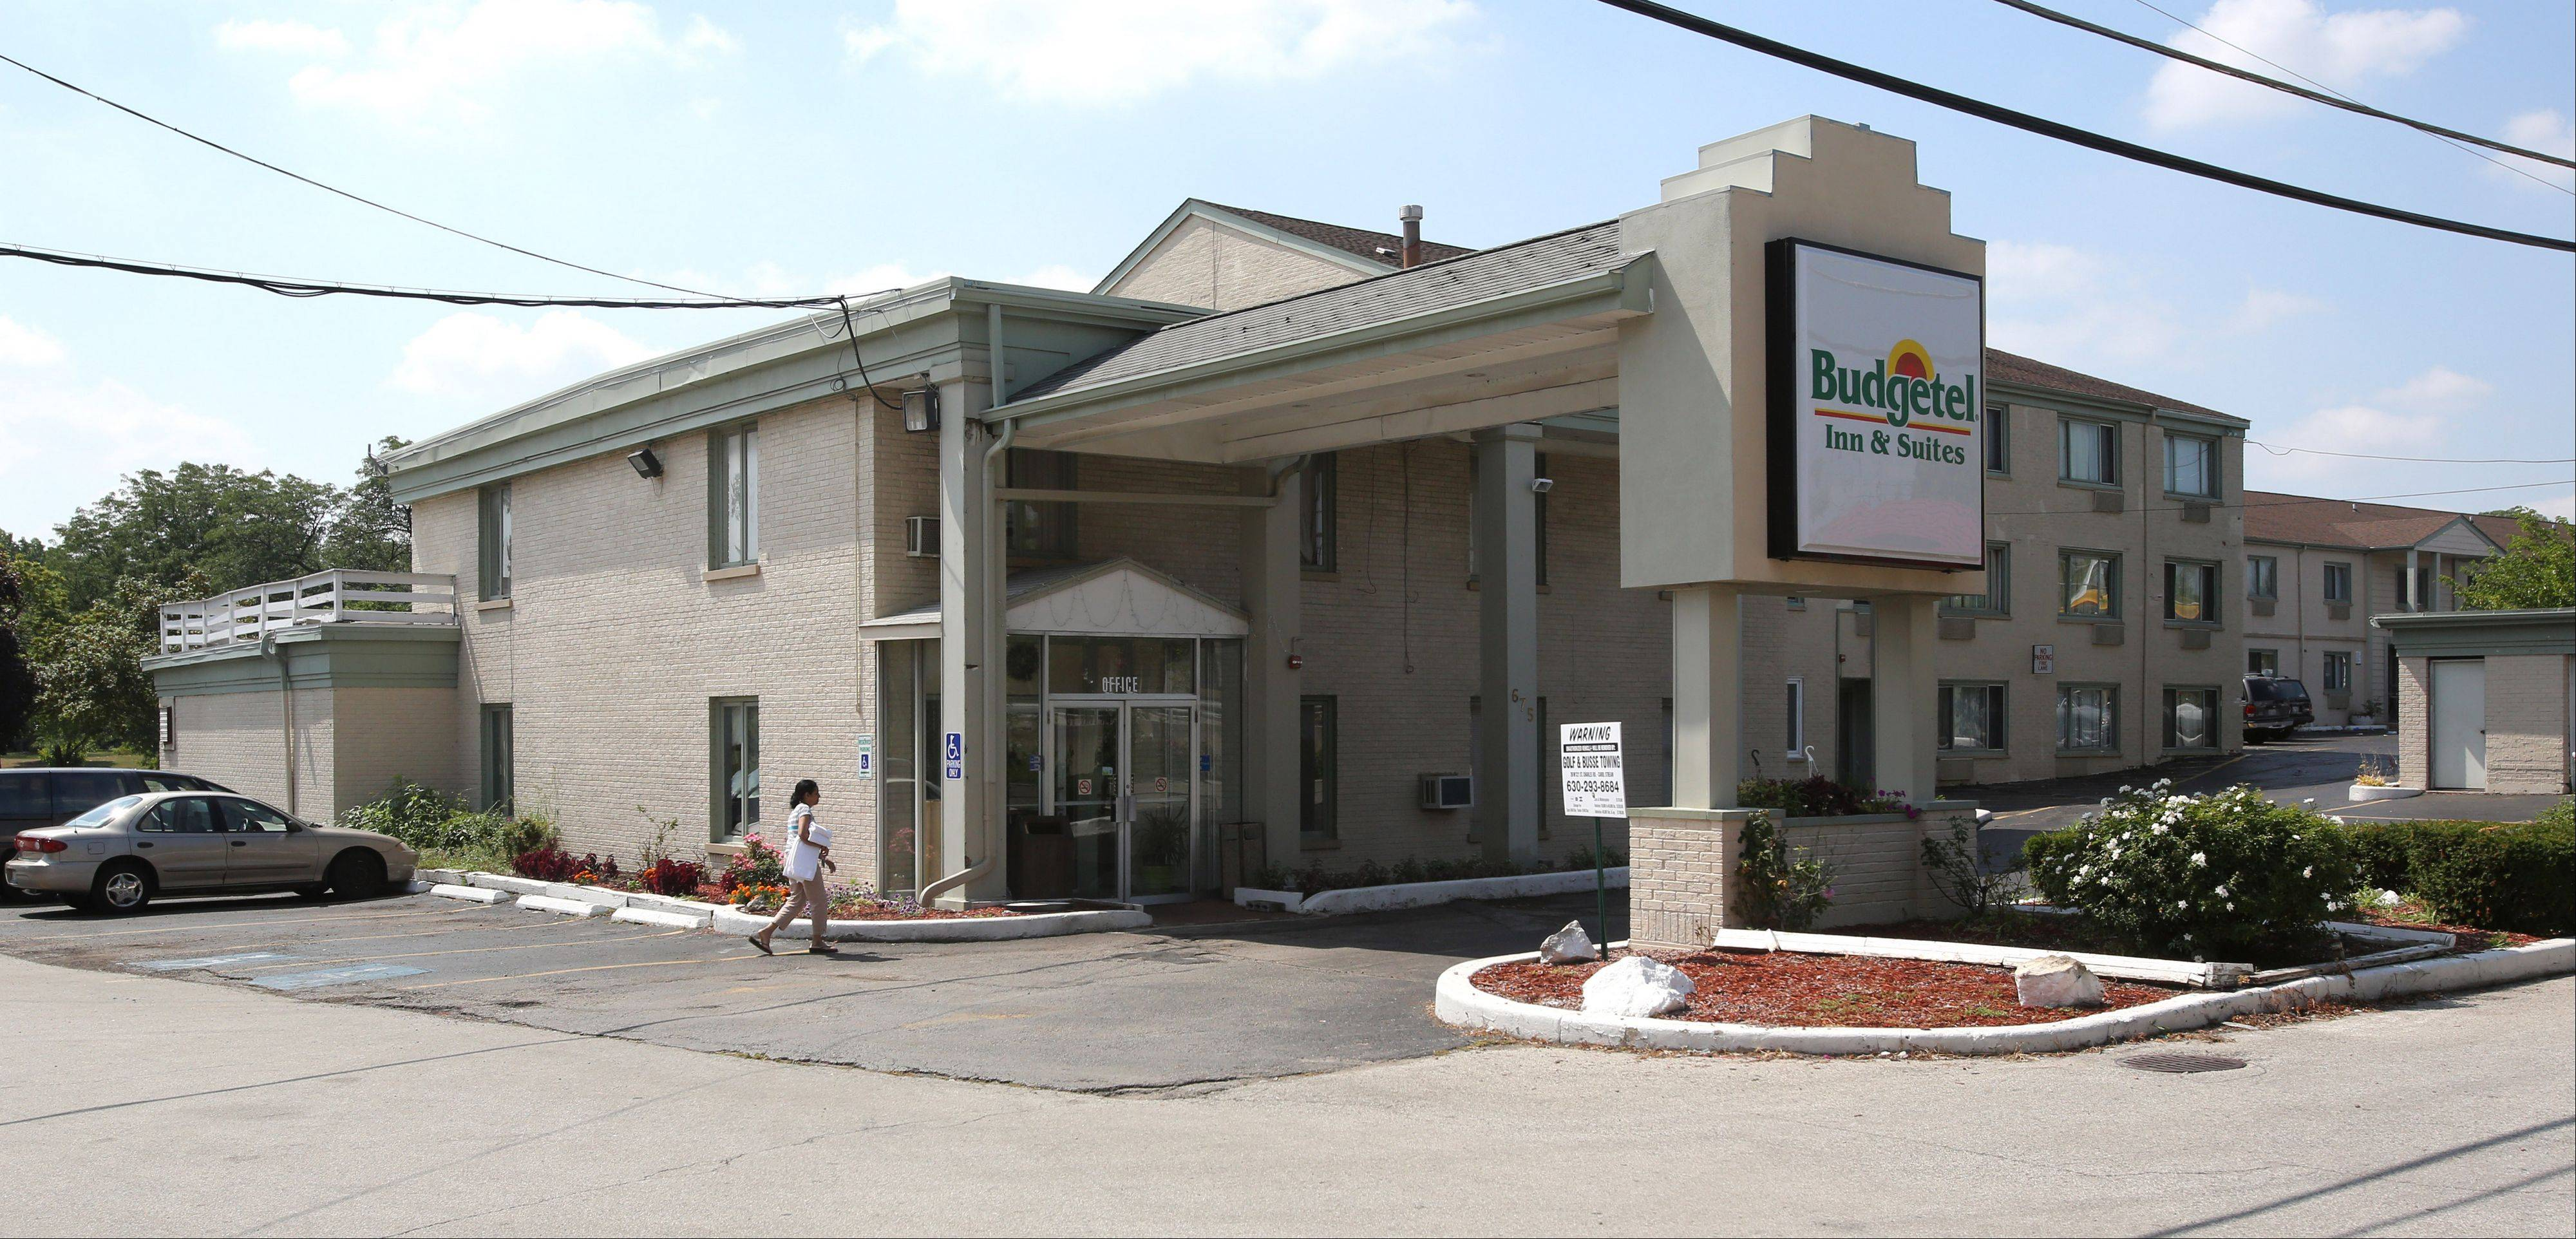 Glen Ellyn officials have proposed a license fee for two hotels located in town, including the America's Best Inn/Budgetel Inn & Suites at 675 Roosevelt Road.